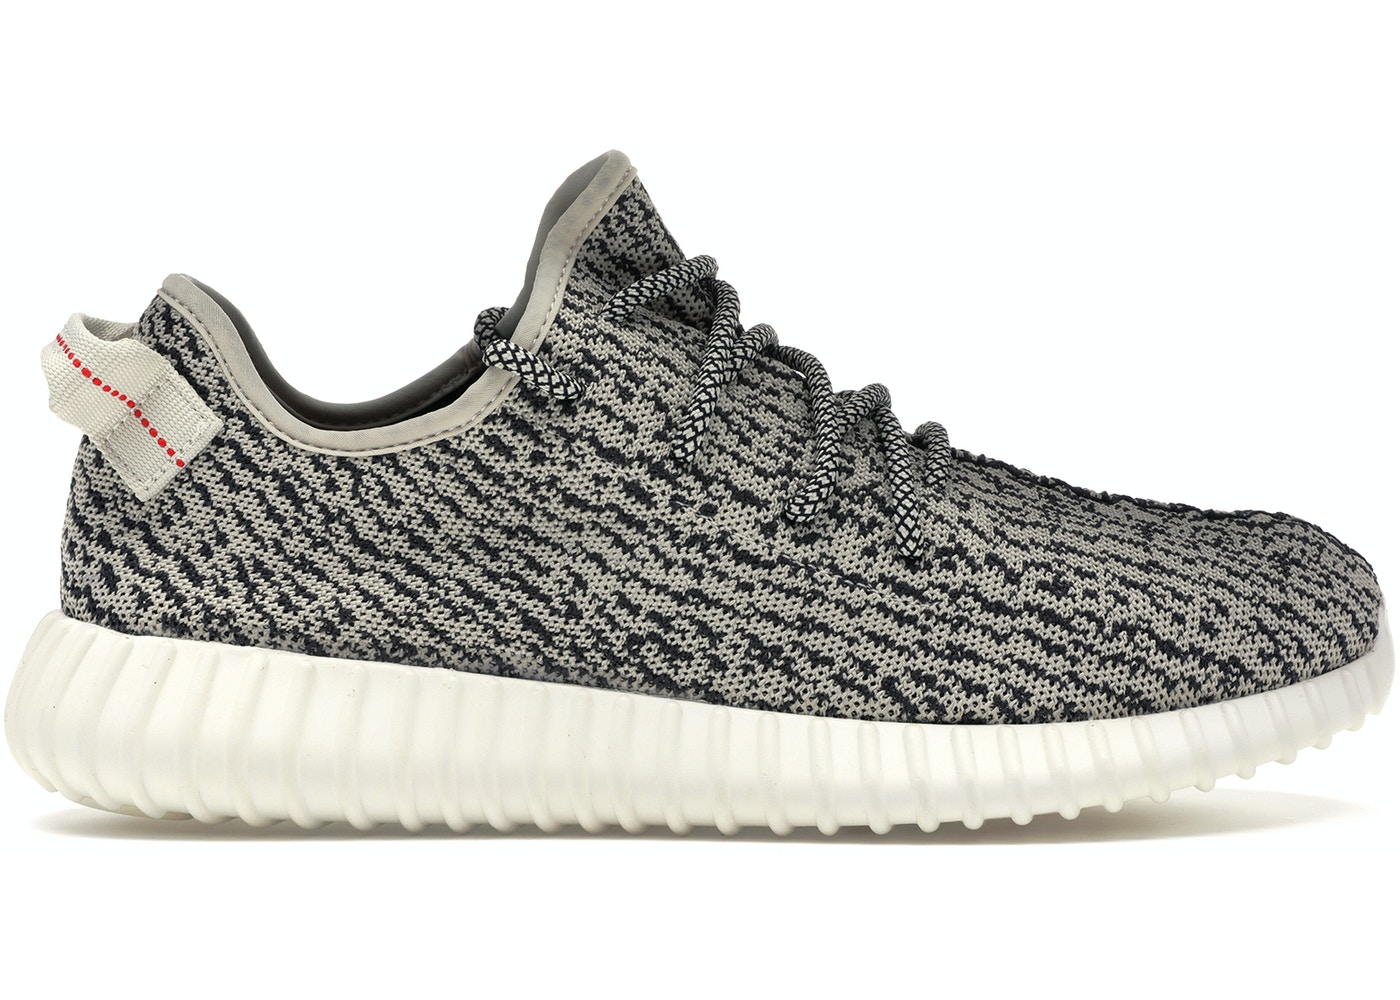 17148972 adidas Yeezy Boost 350 Turtledove - AQ4832